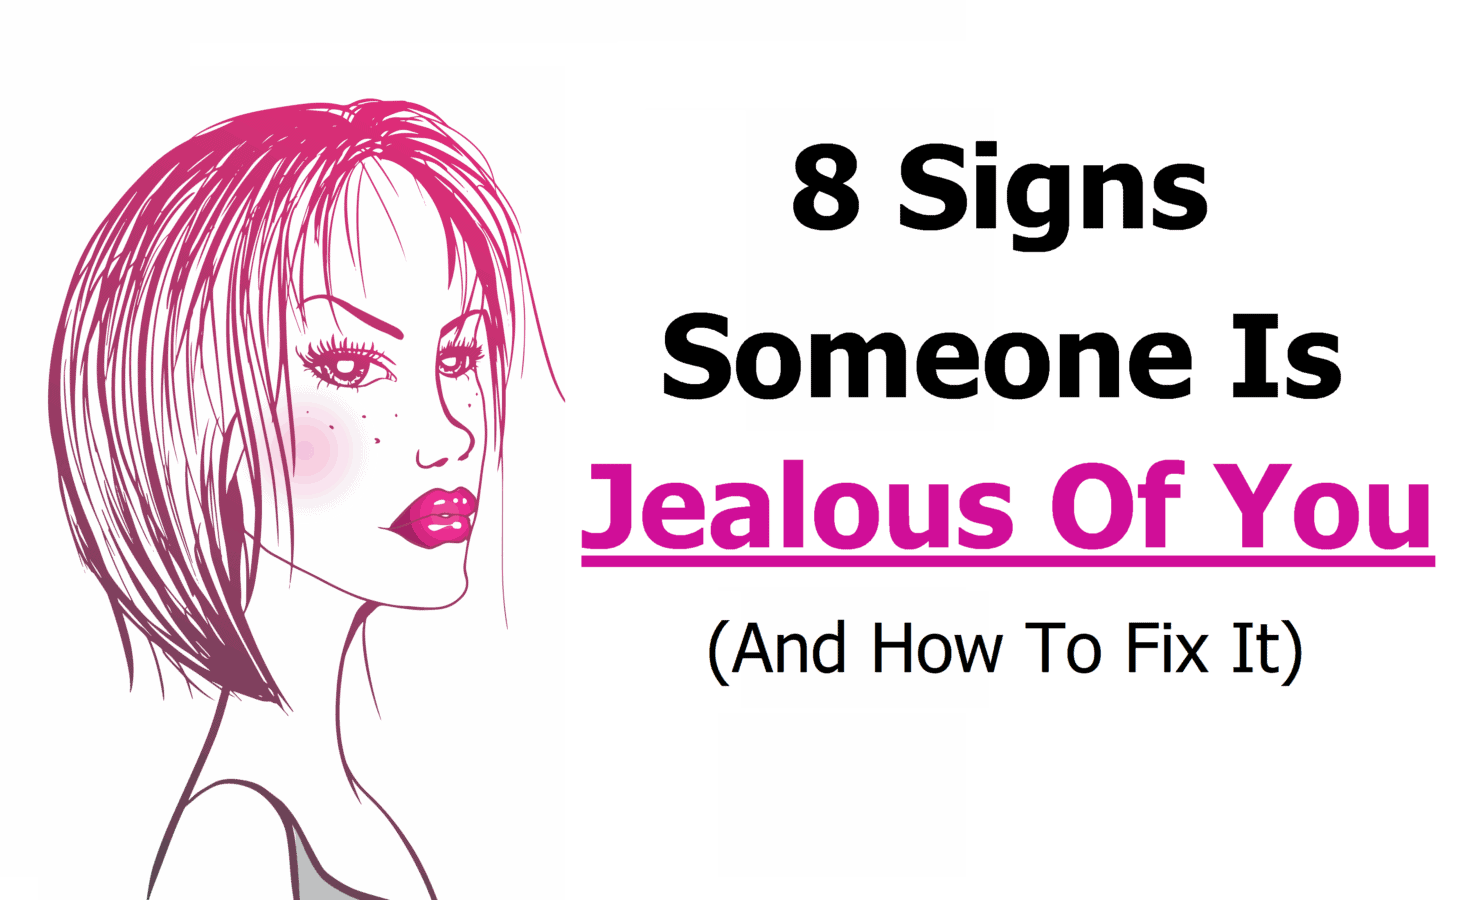 8 Signs Someone Is Jealous Of You (And How To Fix It)